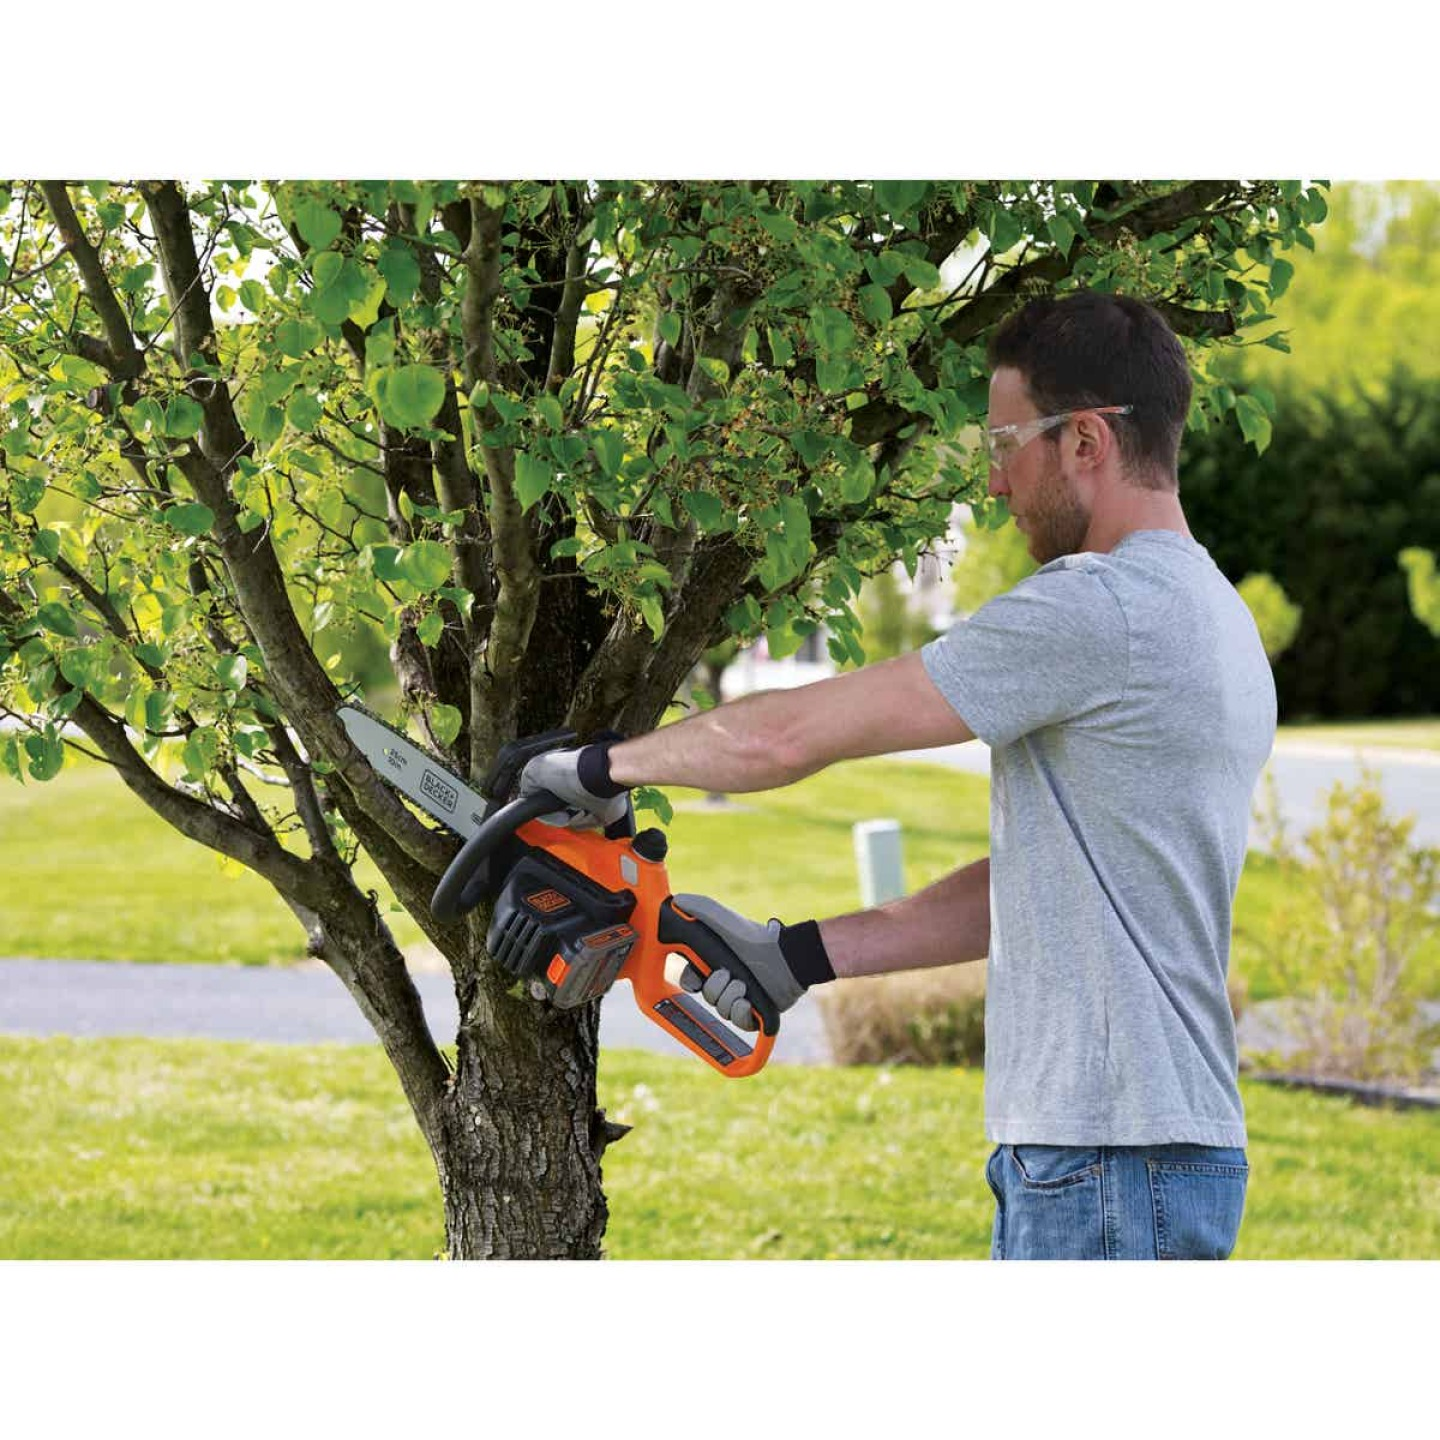 Black & Decker 10 In. 20V MAX Lithium Ion Cordless Chainsaw Image 2